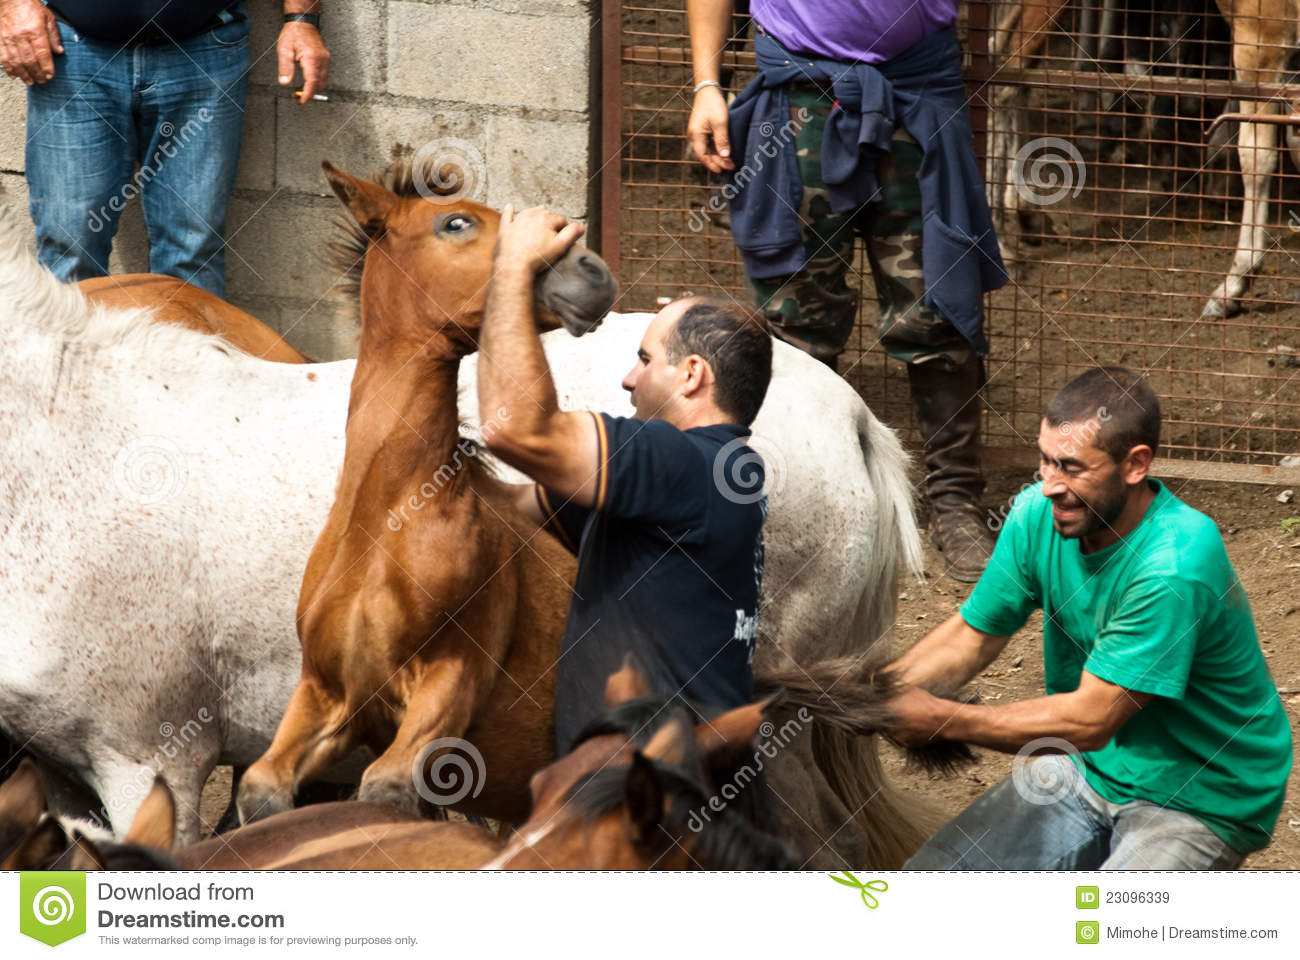 Two Men One Horse Stock Images